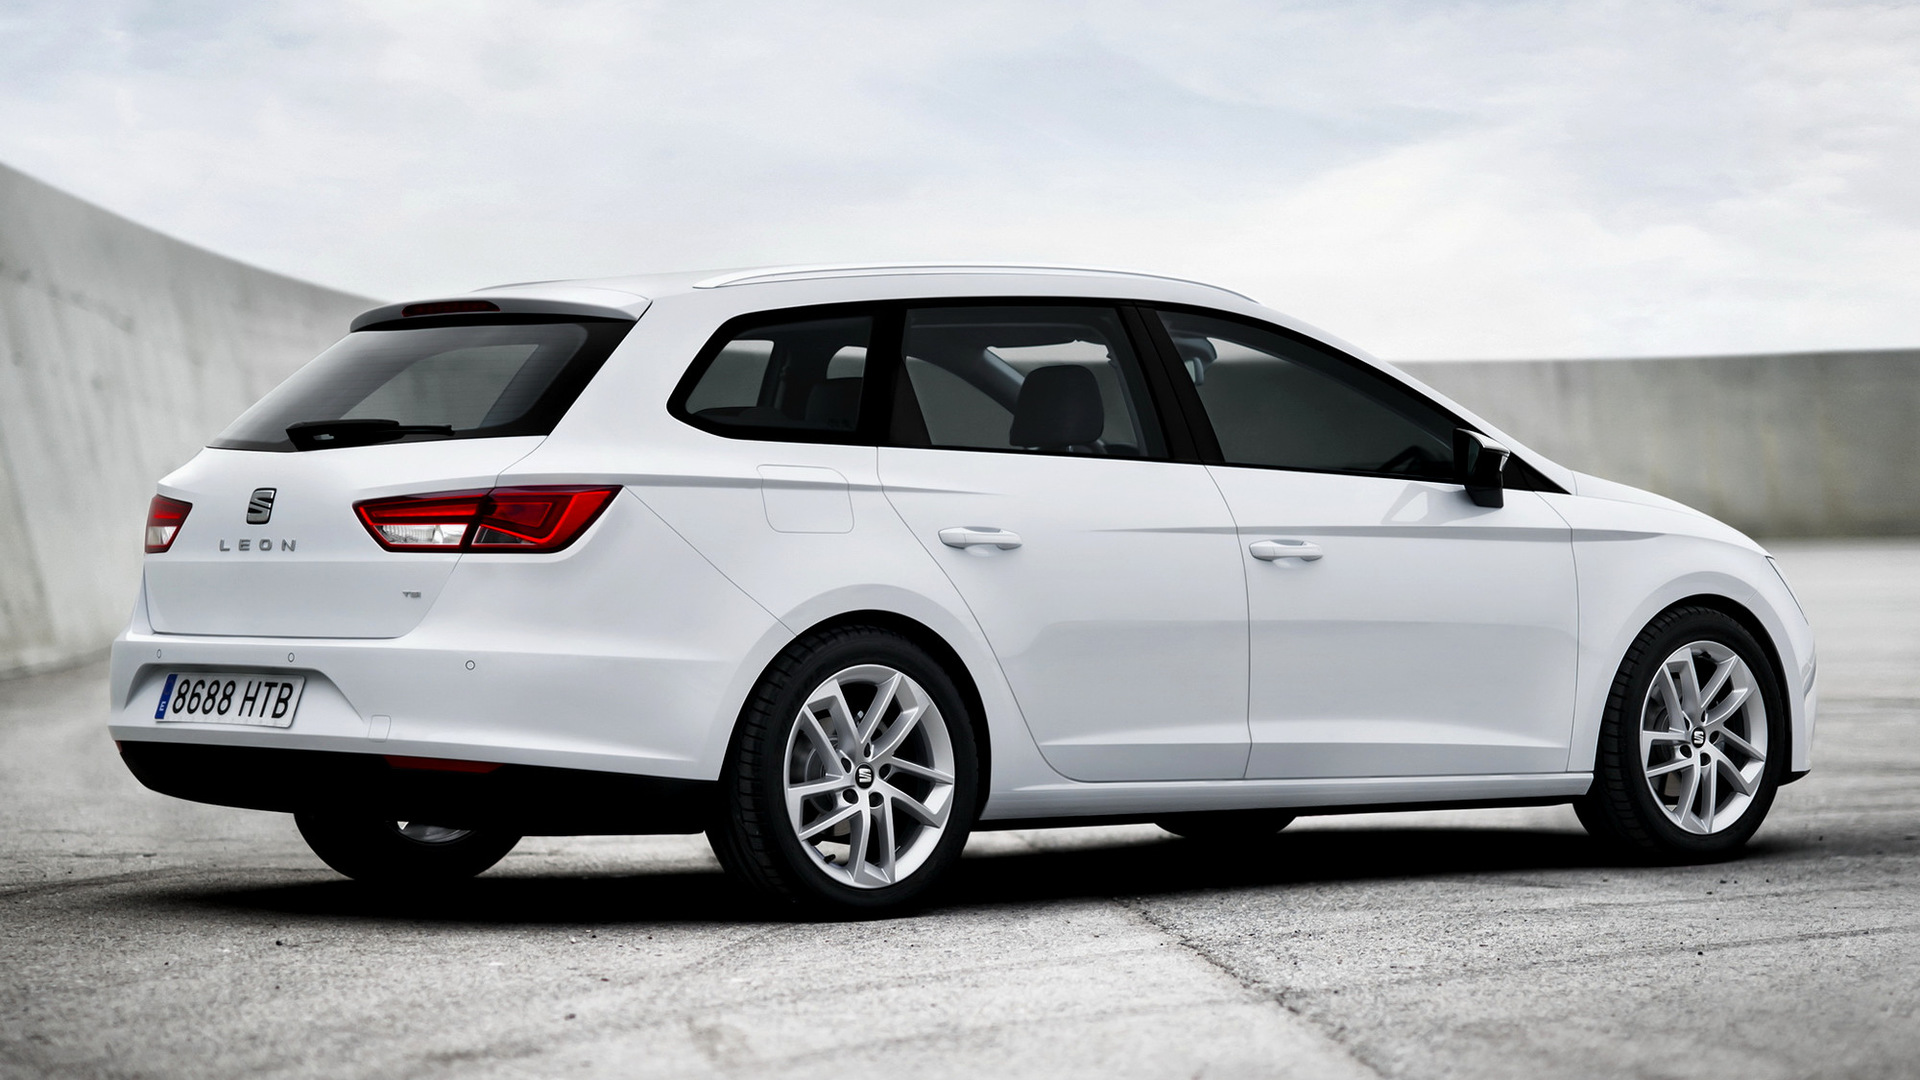 Seat leon st 2013 wallpapers and hd images car pixel